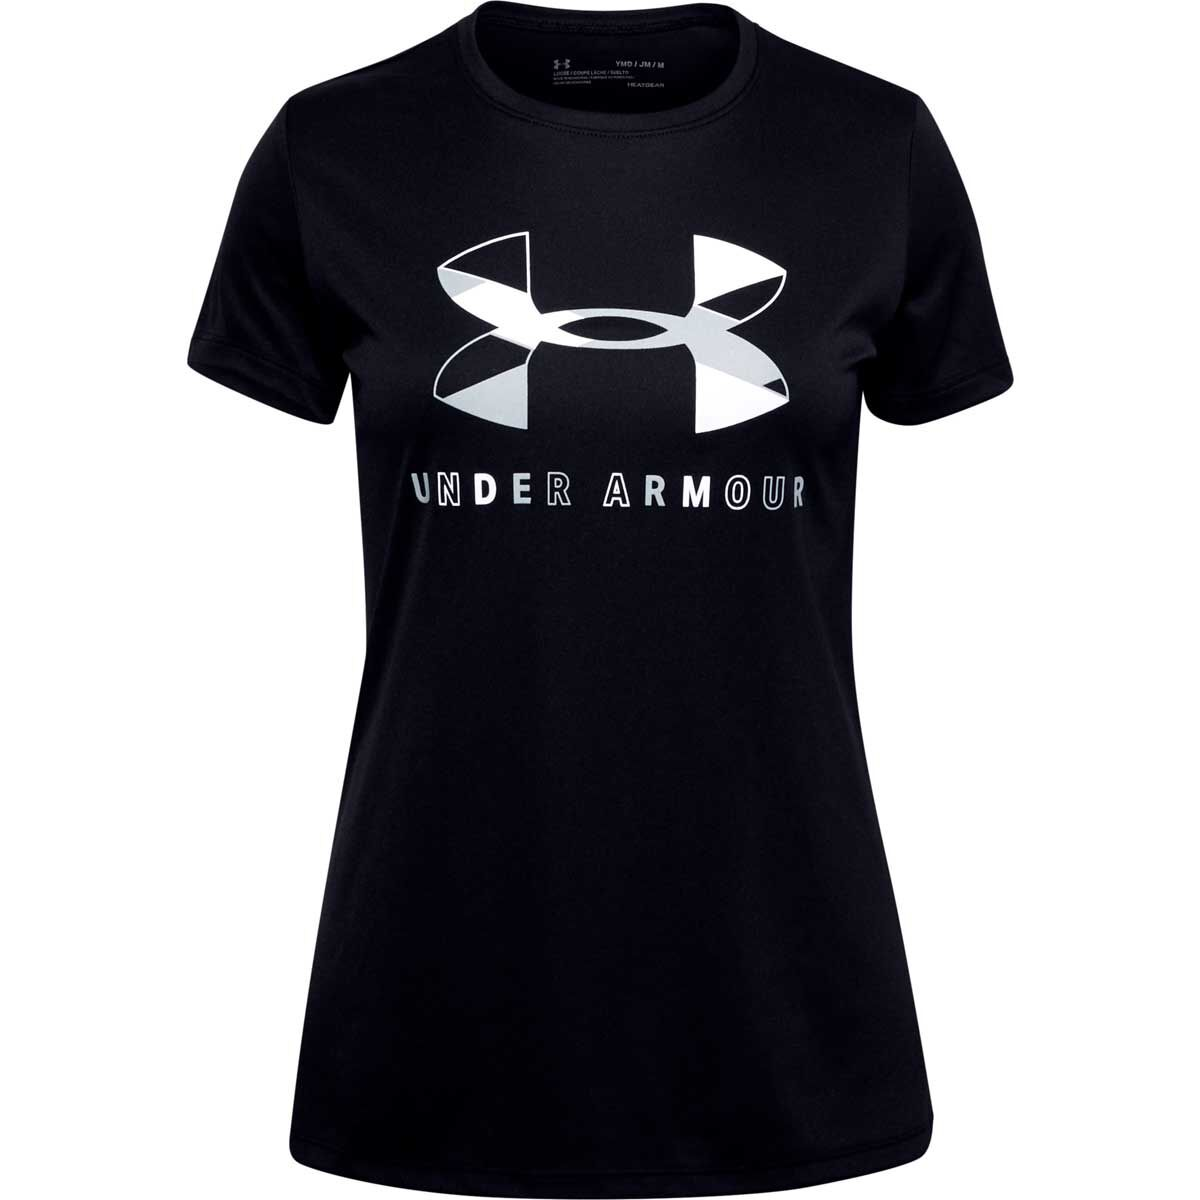 under armor shirts for girls